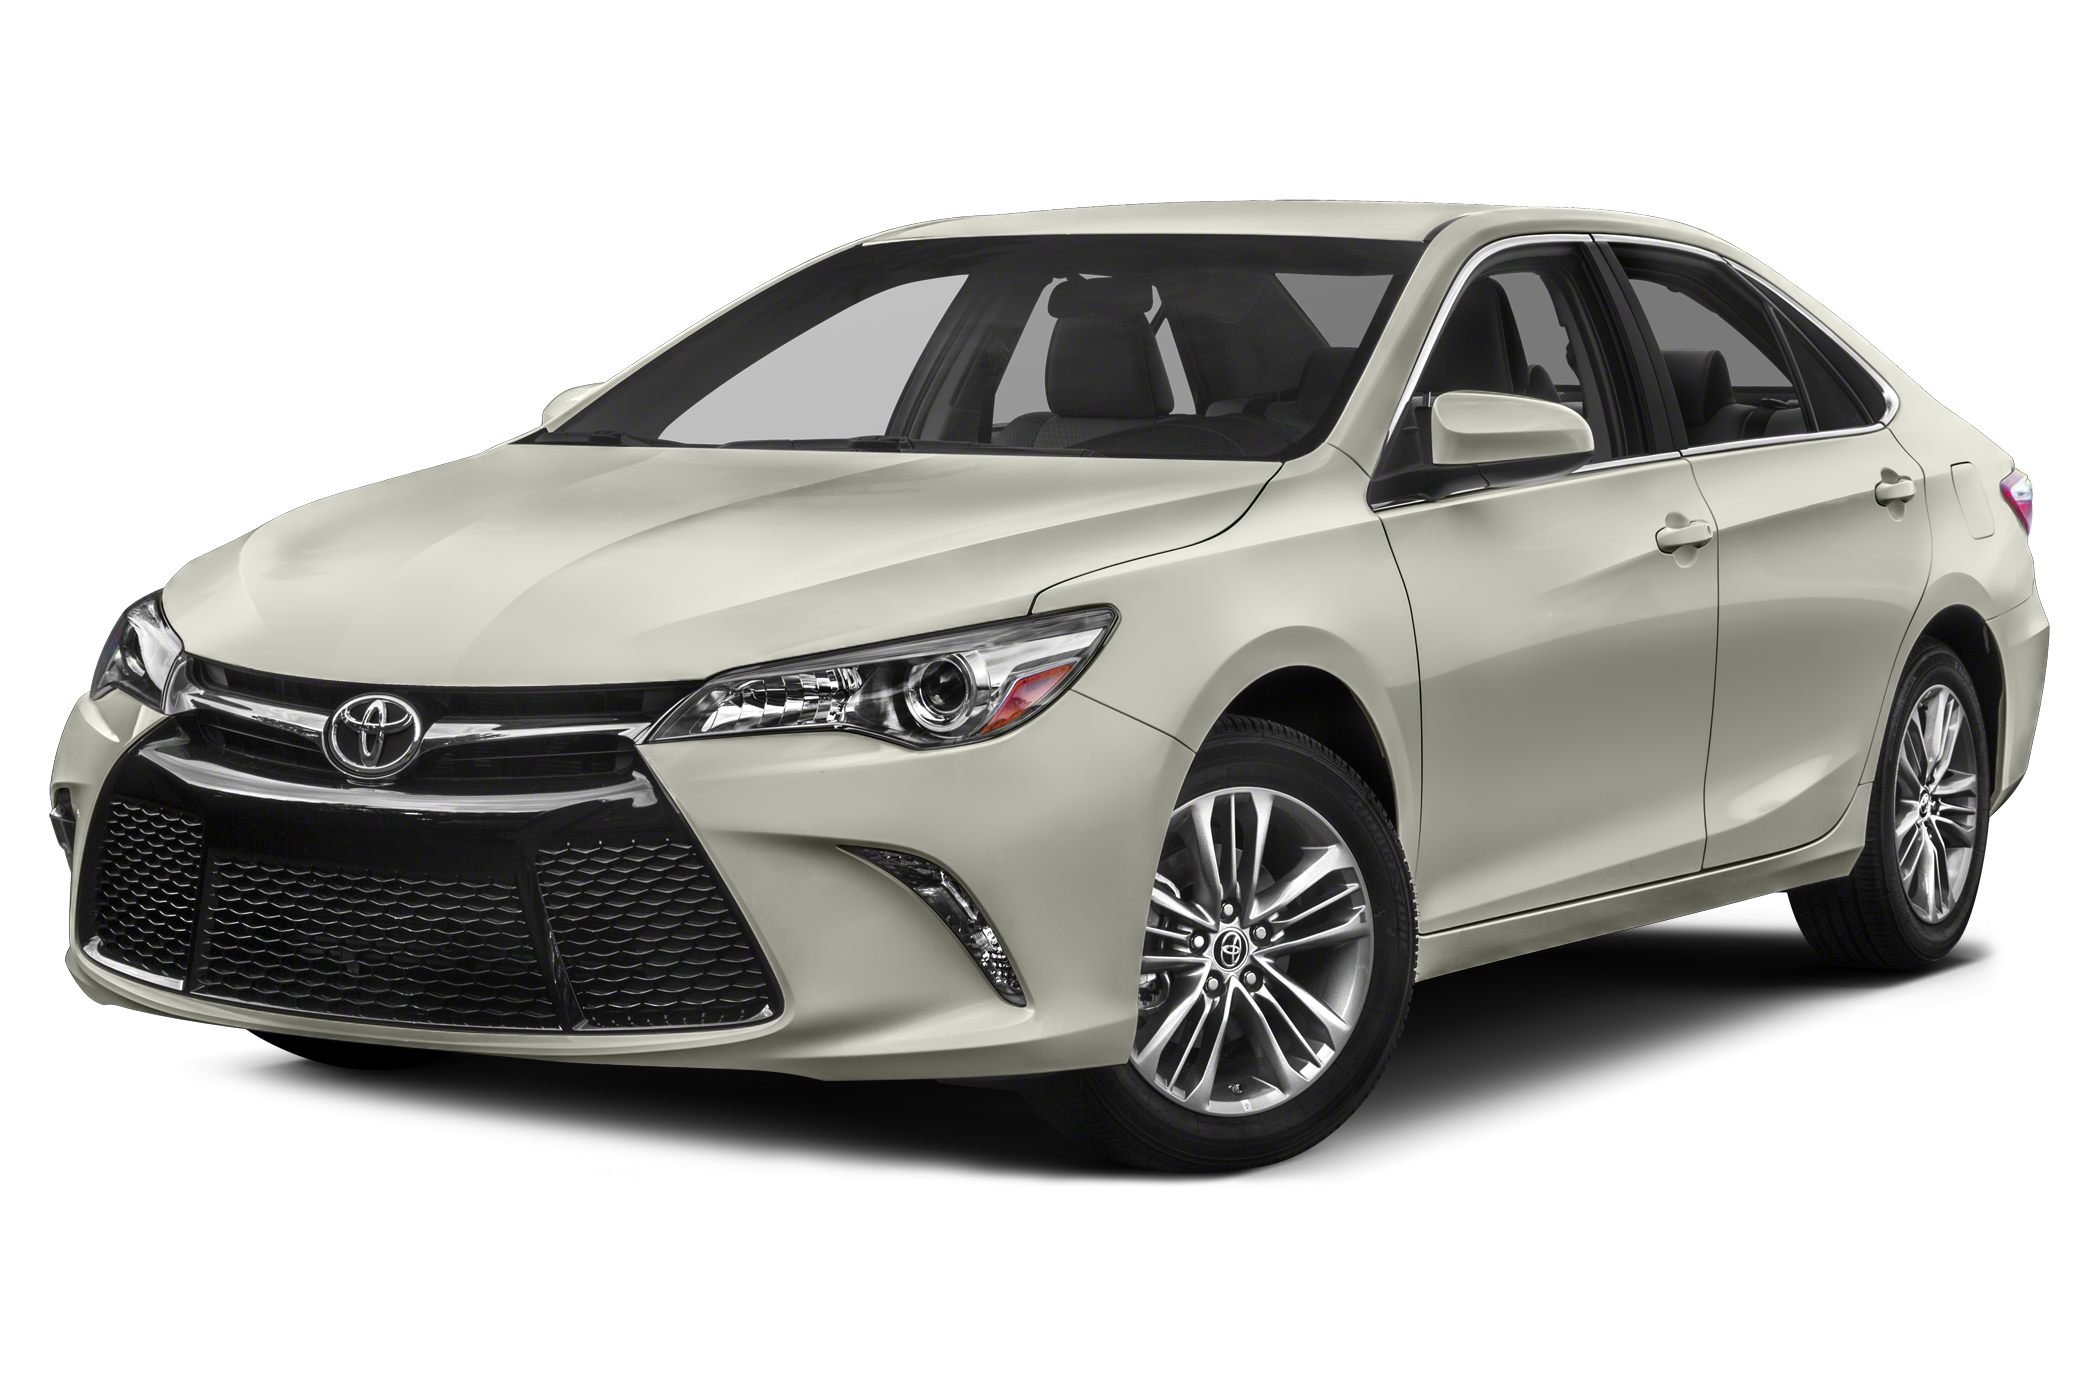 2015 Toyota Camry SE Sedan for sale in Houston for $27,151 with 0 miles.